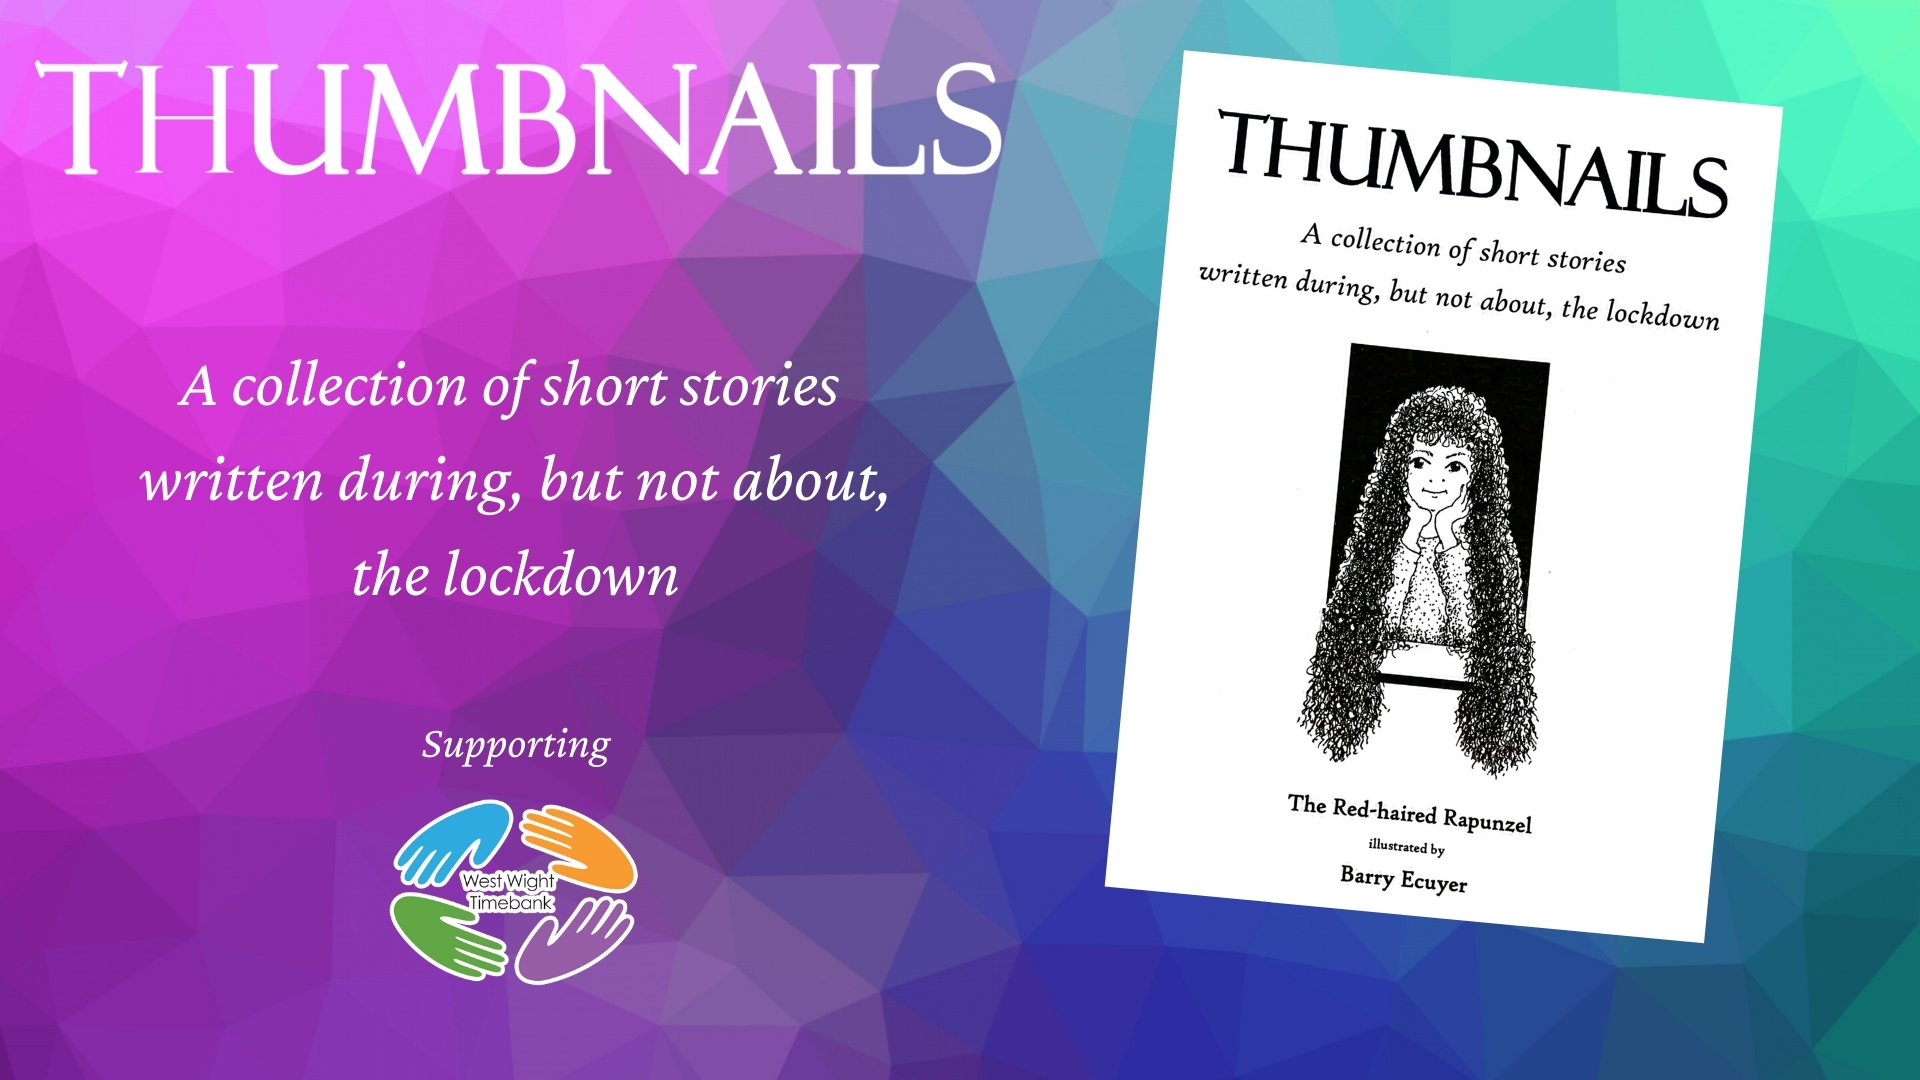 Thumbnails short stories